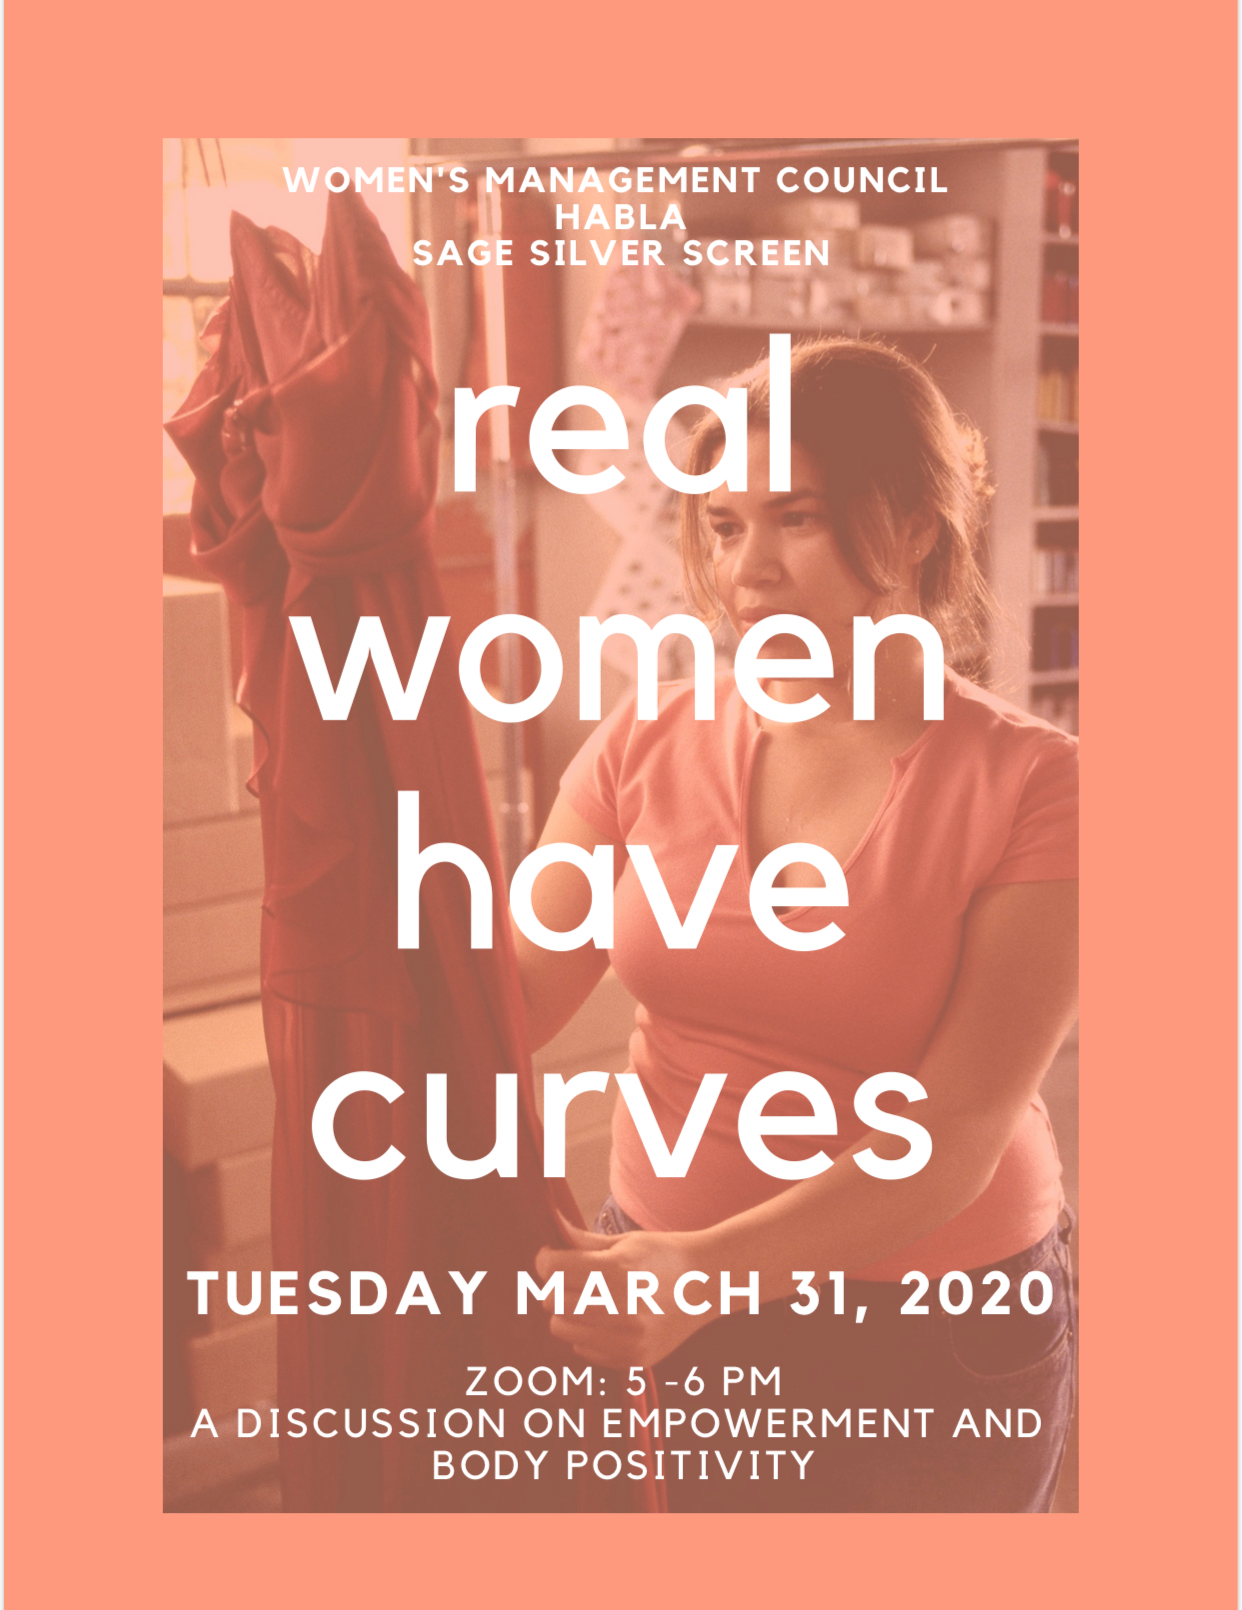 *VIRTUAL* Real Women Have Curves hosted by WMC, HABLA, & Sage Silver Screen